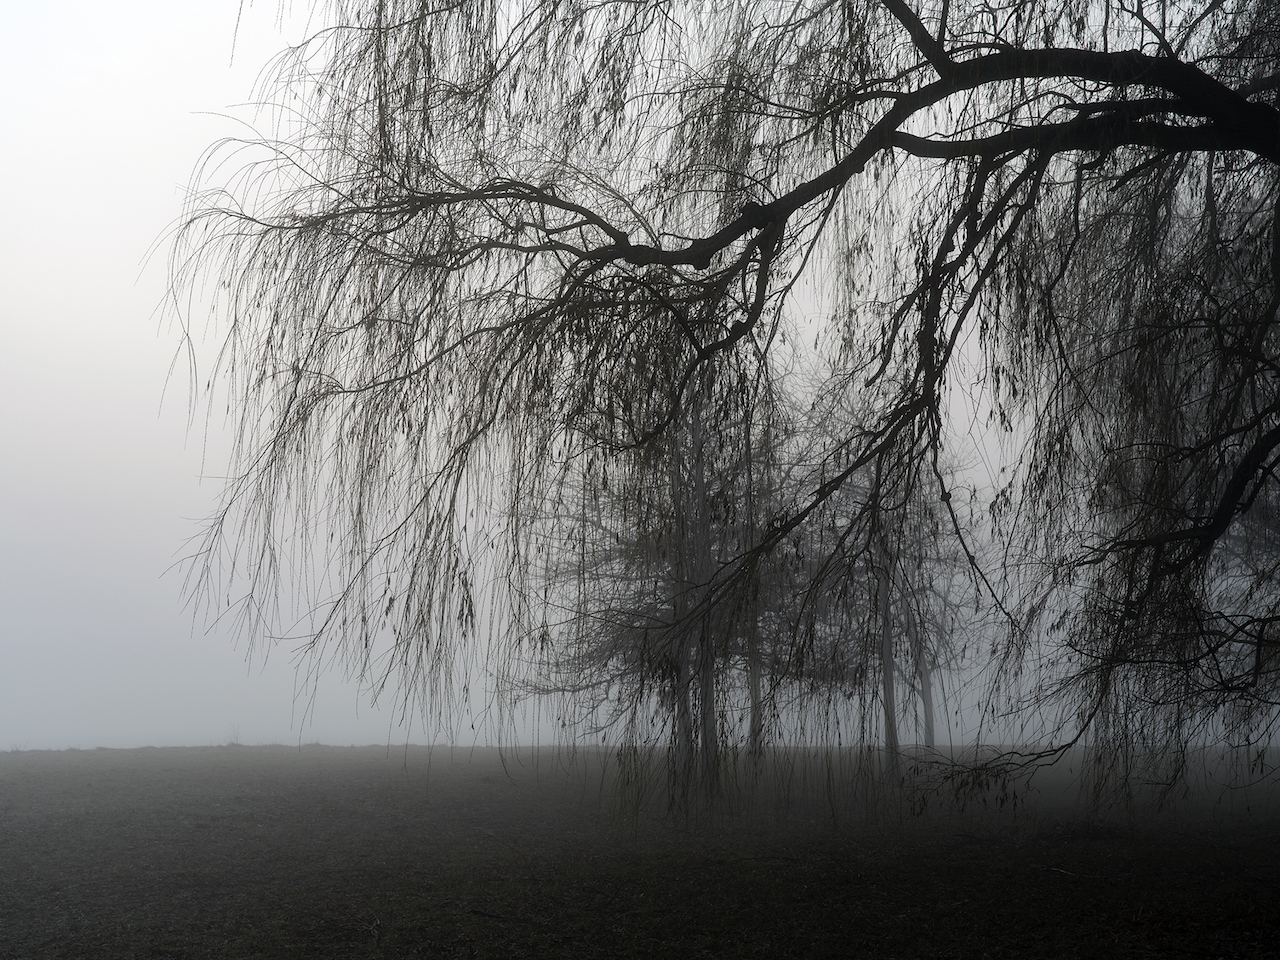 willow trees stand in a heavy fog along the edge of Lake MIchigan, which is entirely obscured by the fog this morning, from The Shore series by Lincoln Schatz